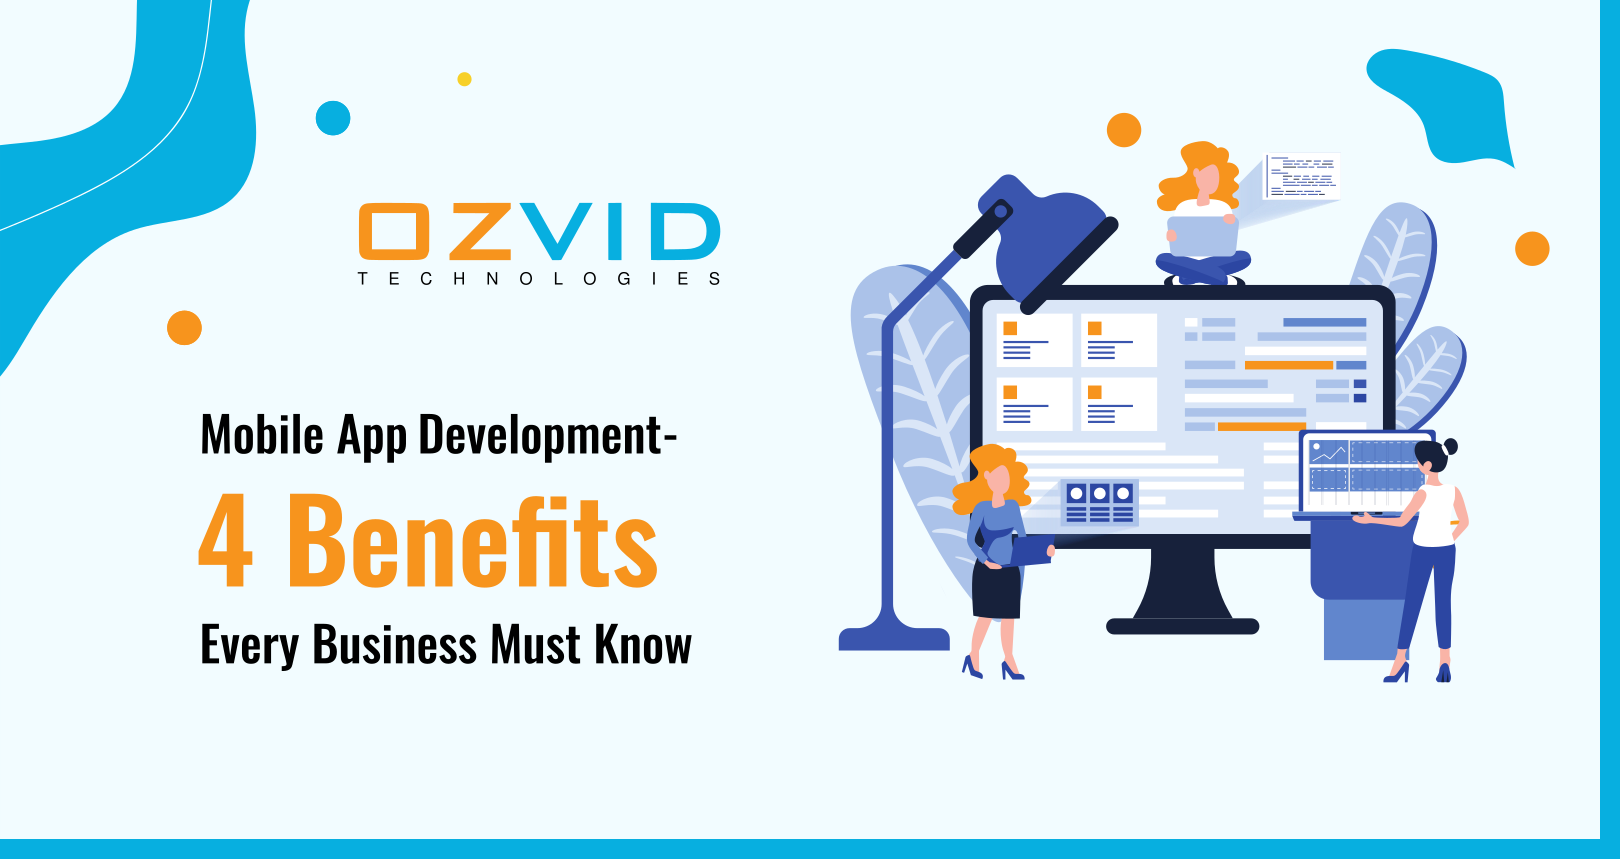 Mobile App Development - 4 Benefits Every Business Must Know